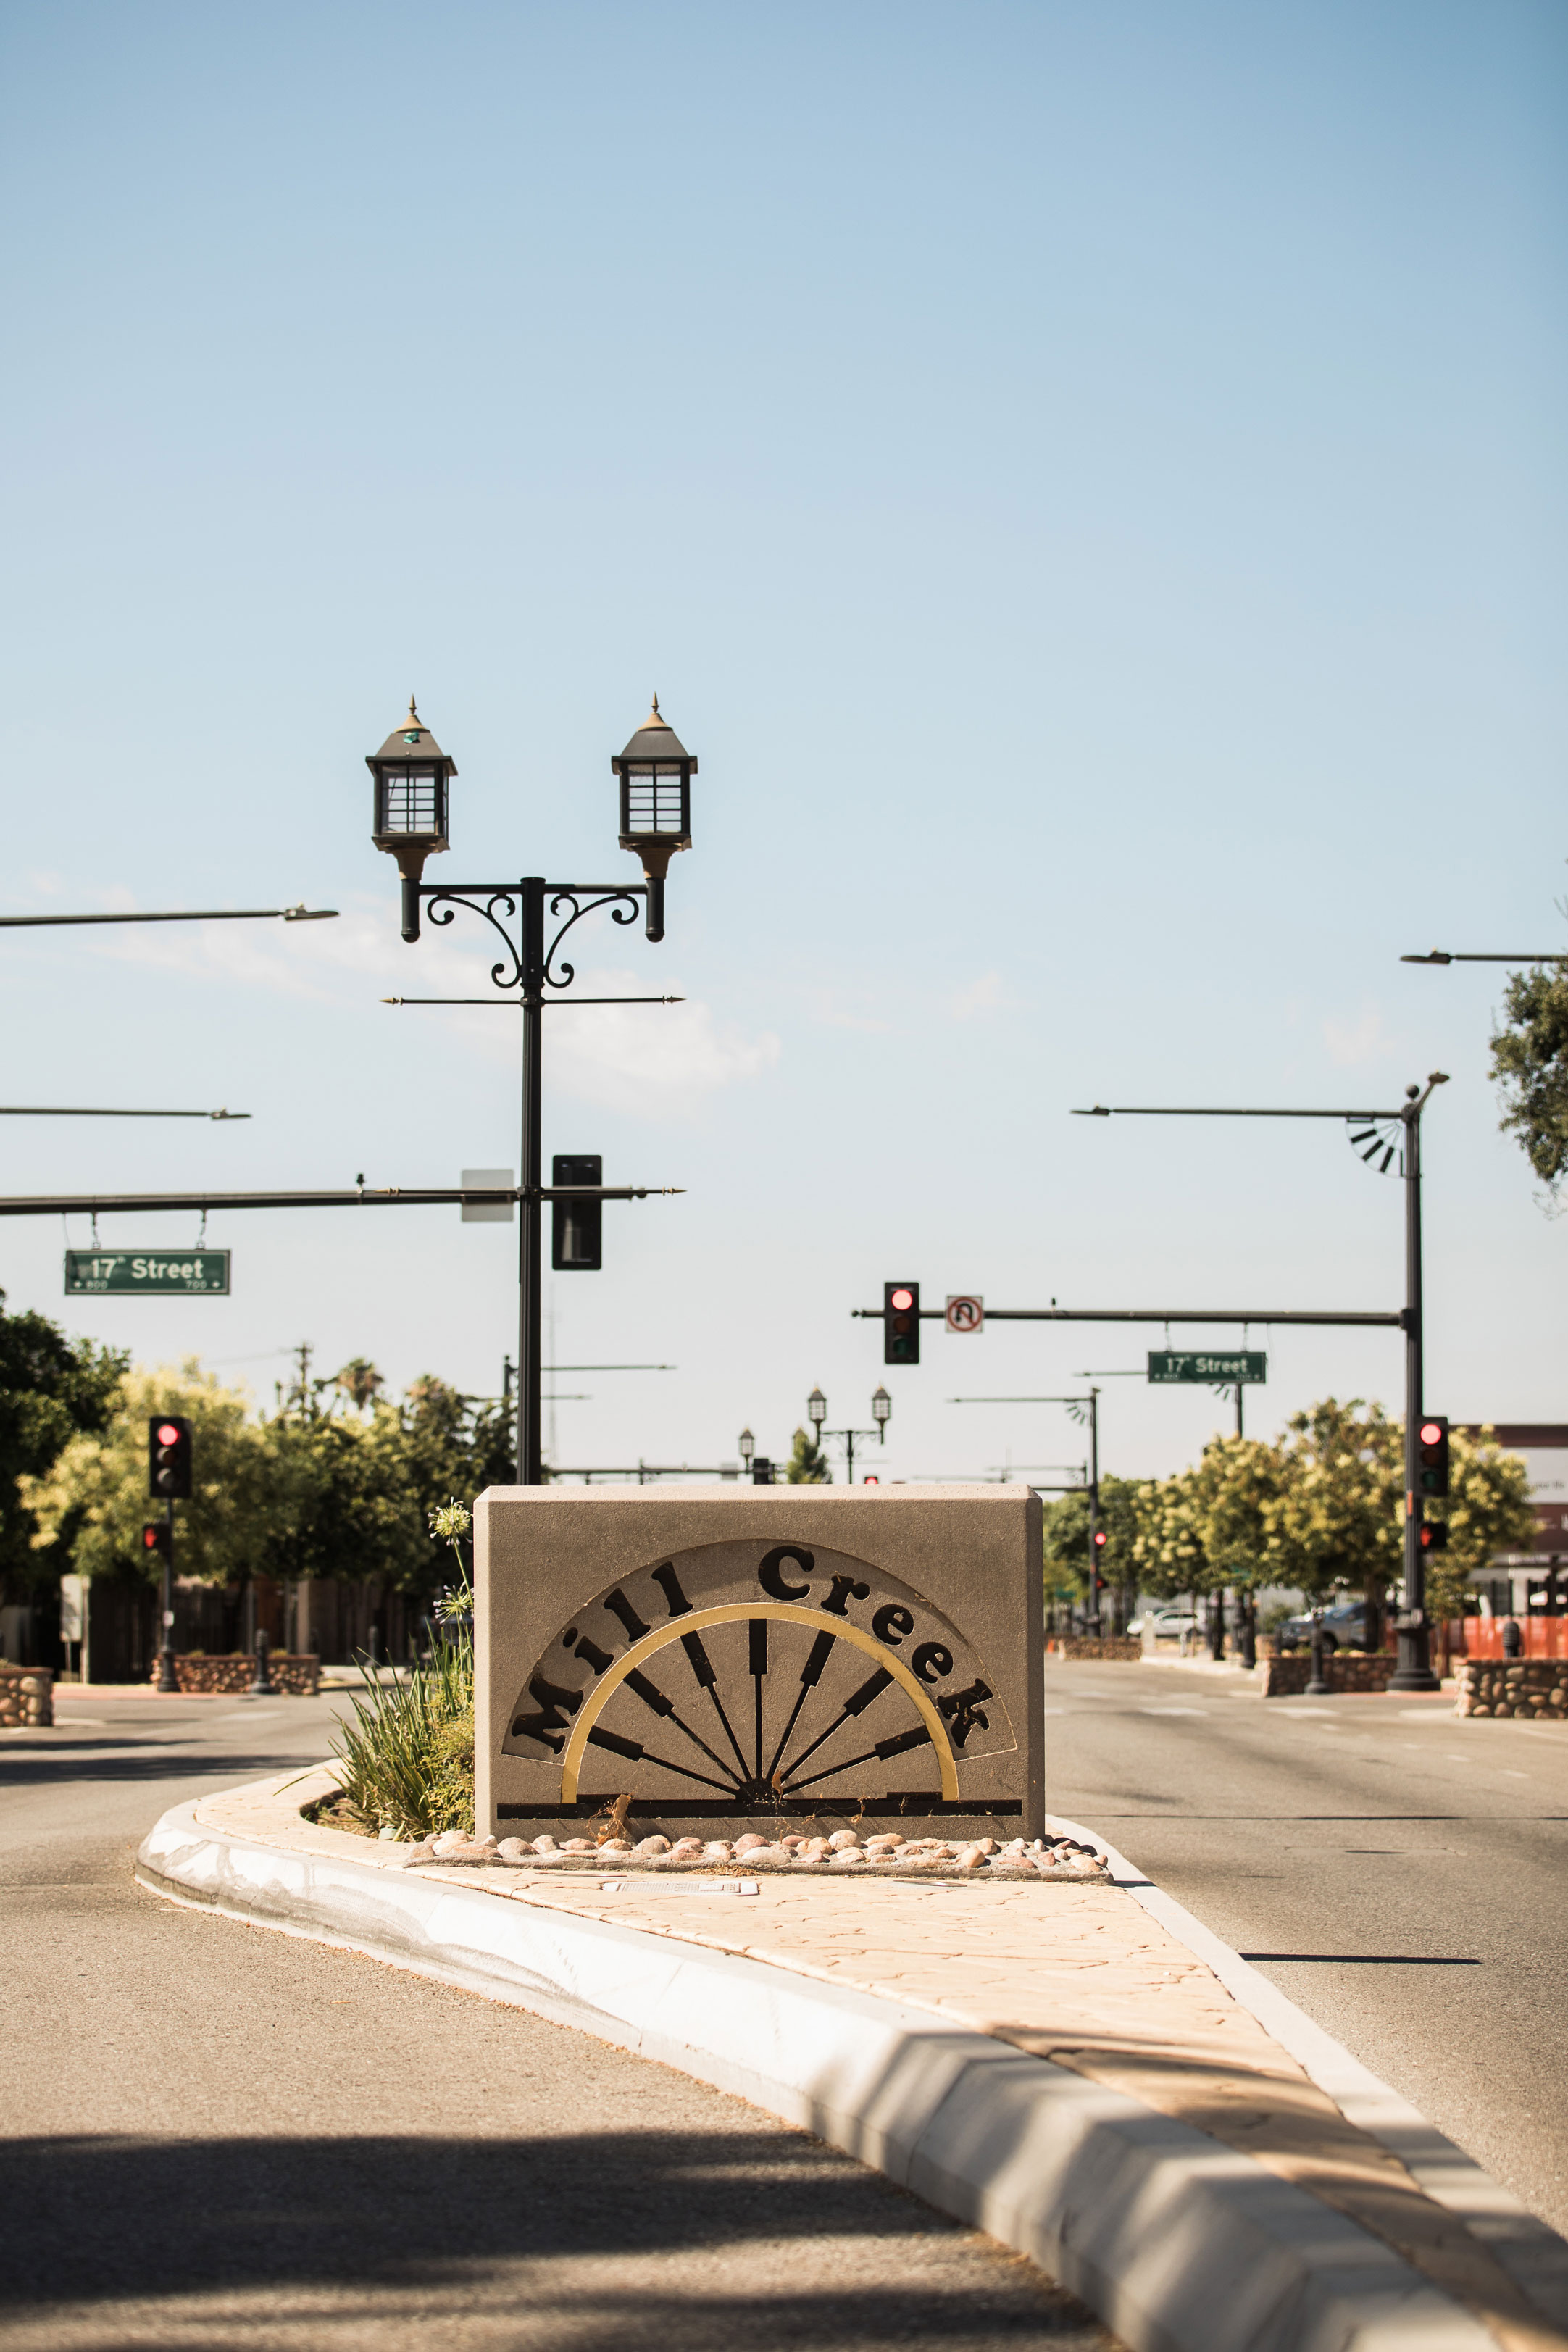 REVITALIZING + REDEFINING BAKERSFIELD'S URBAN CORE - Committees + programs that make Bakersfield a better place to invest, live, work + play